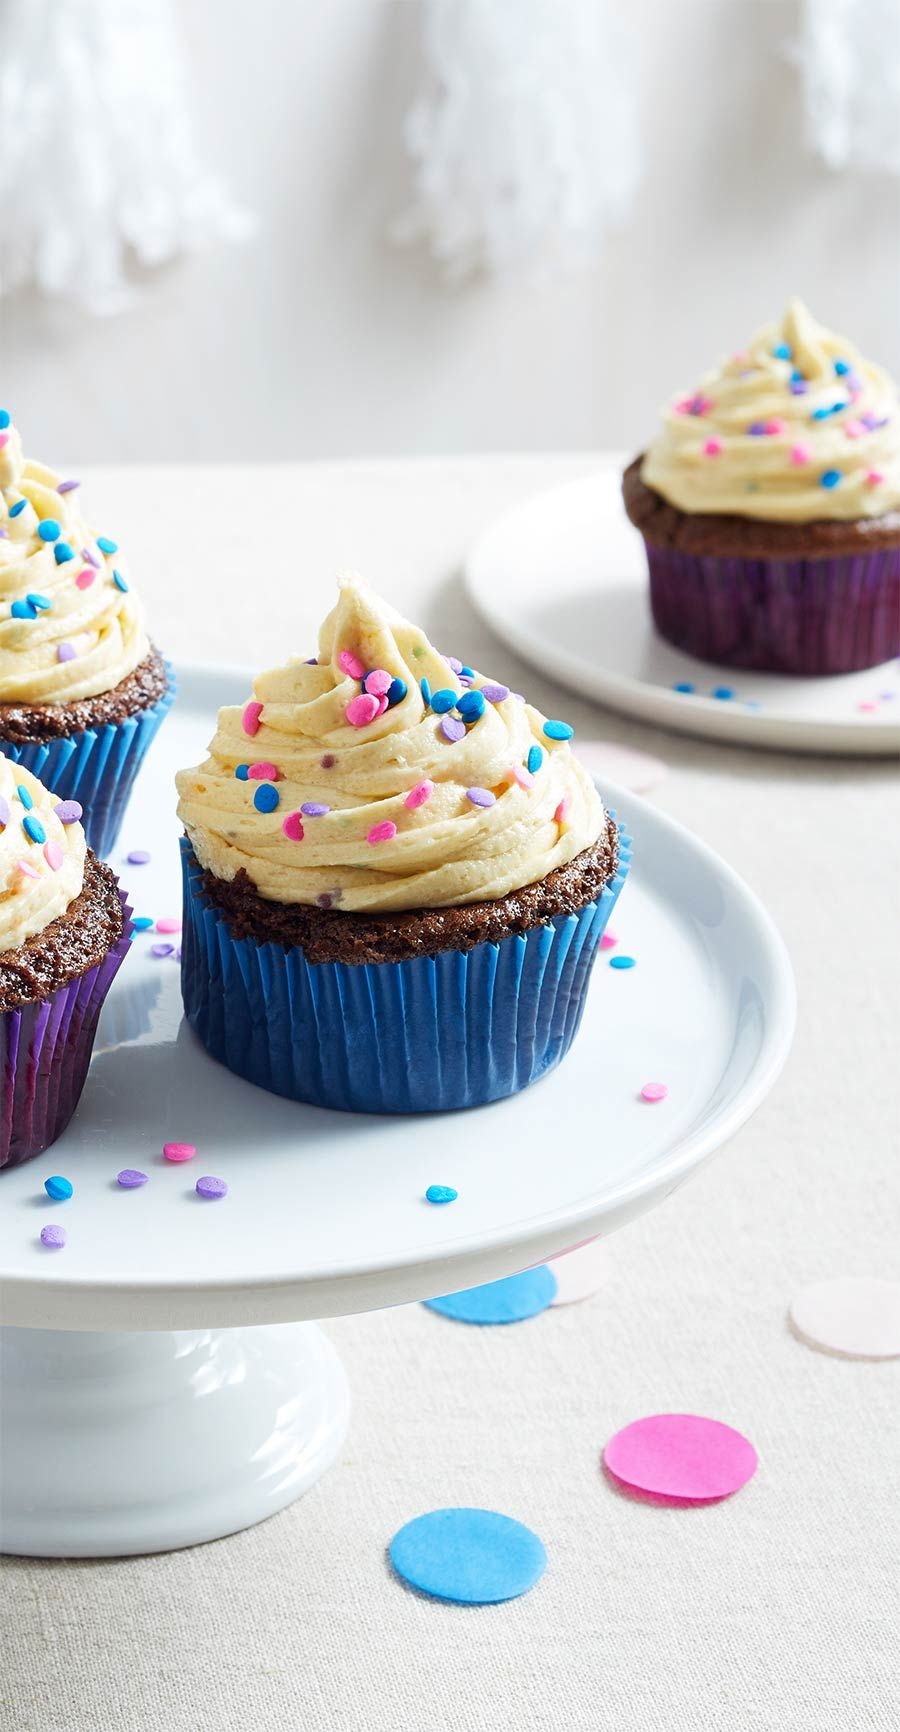 How To Make Chocolate Cupcakes And Frosting Using Just Birthday Cake Cookie Dough Mayonnaise